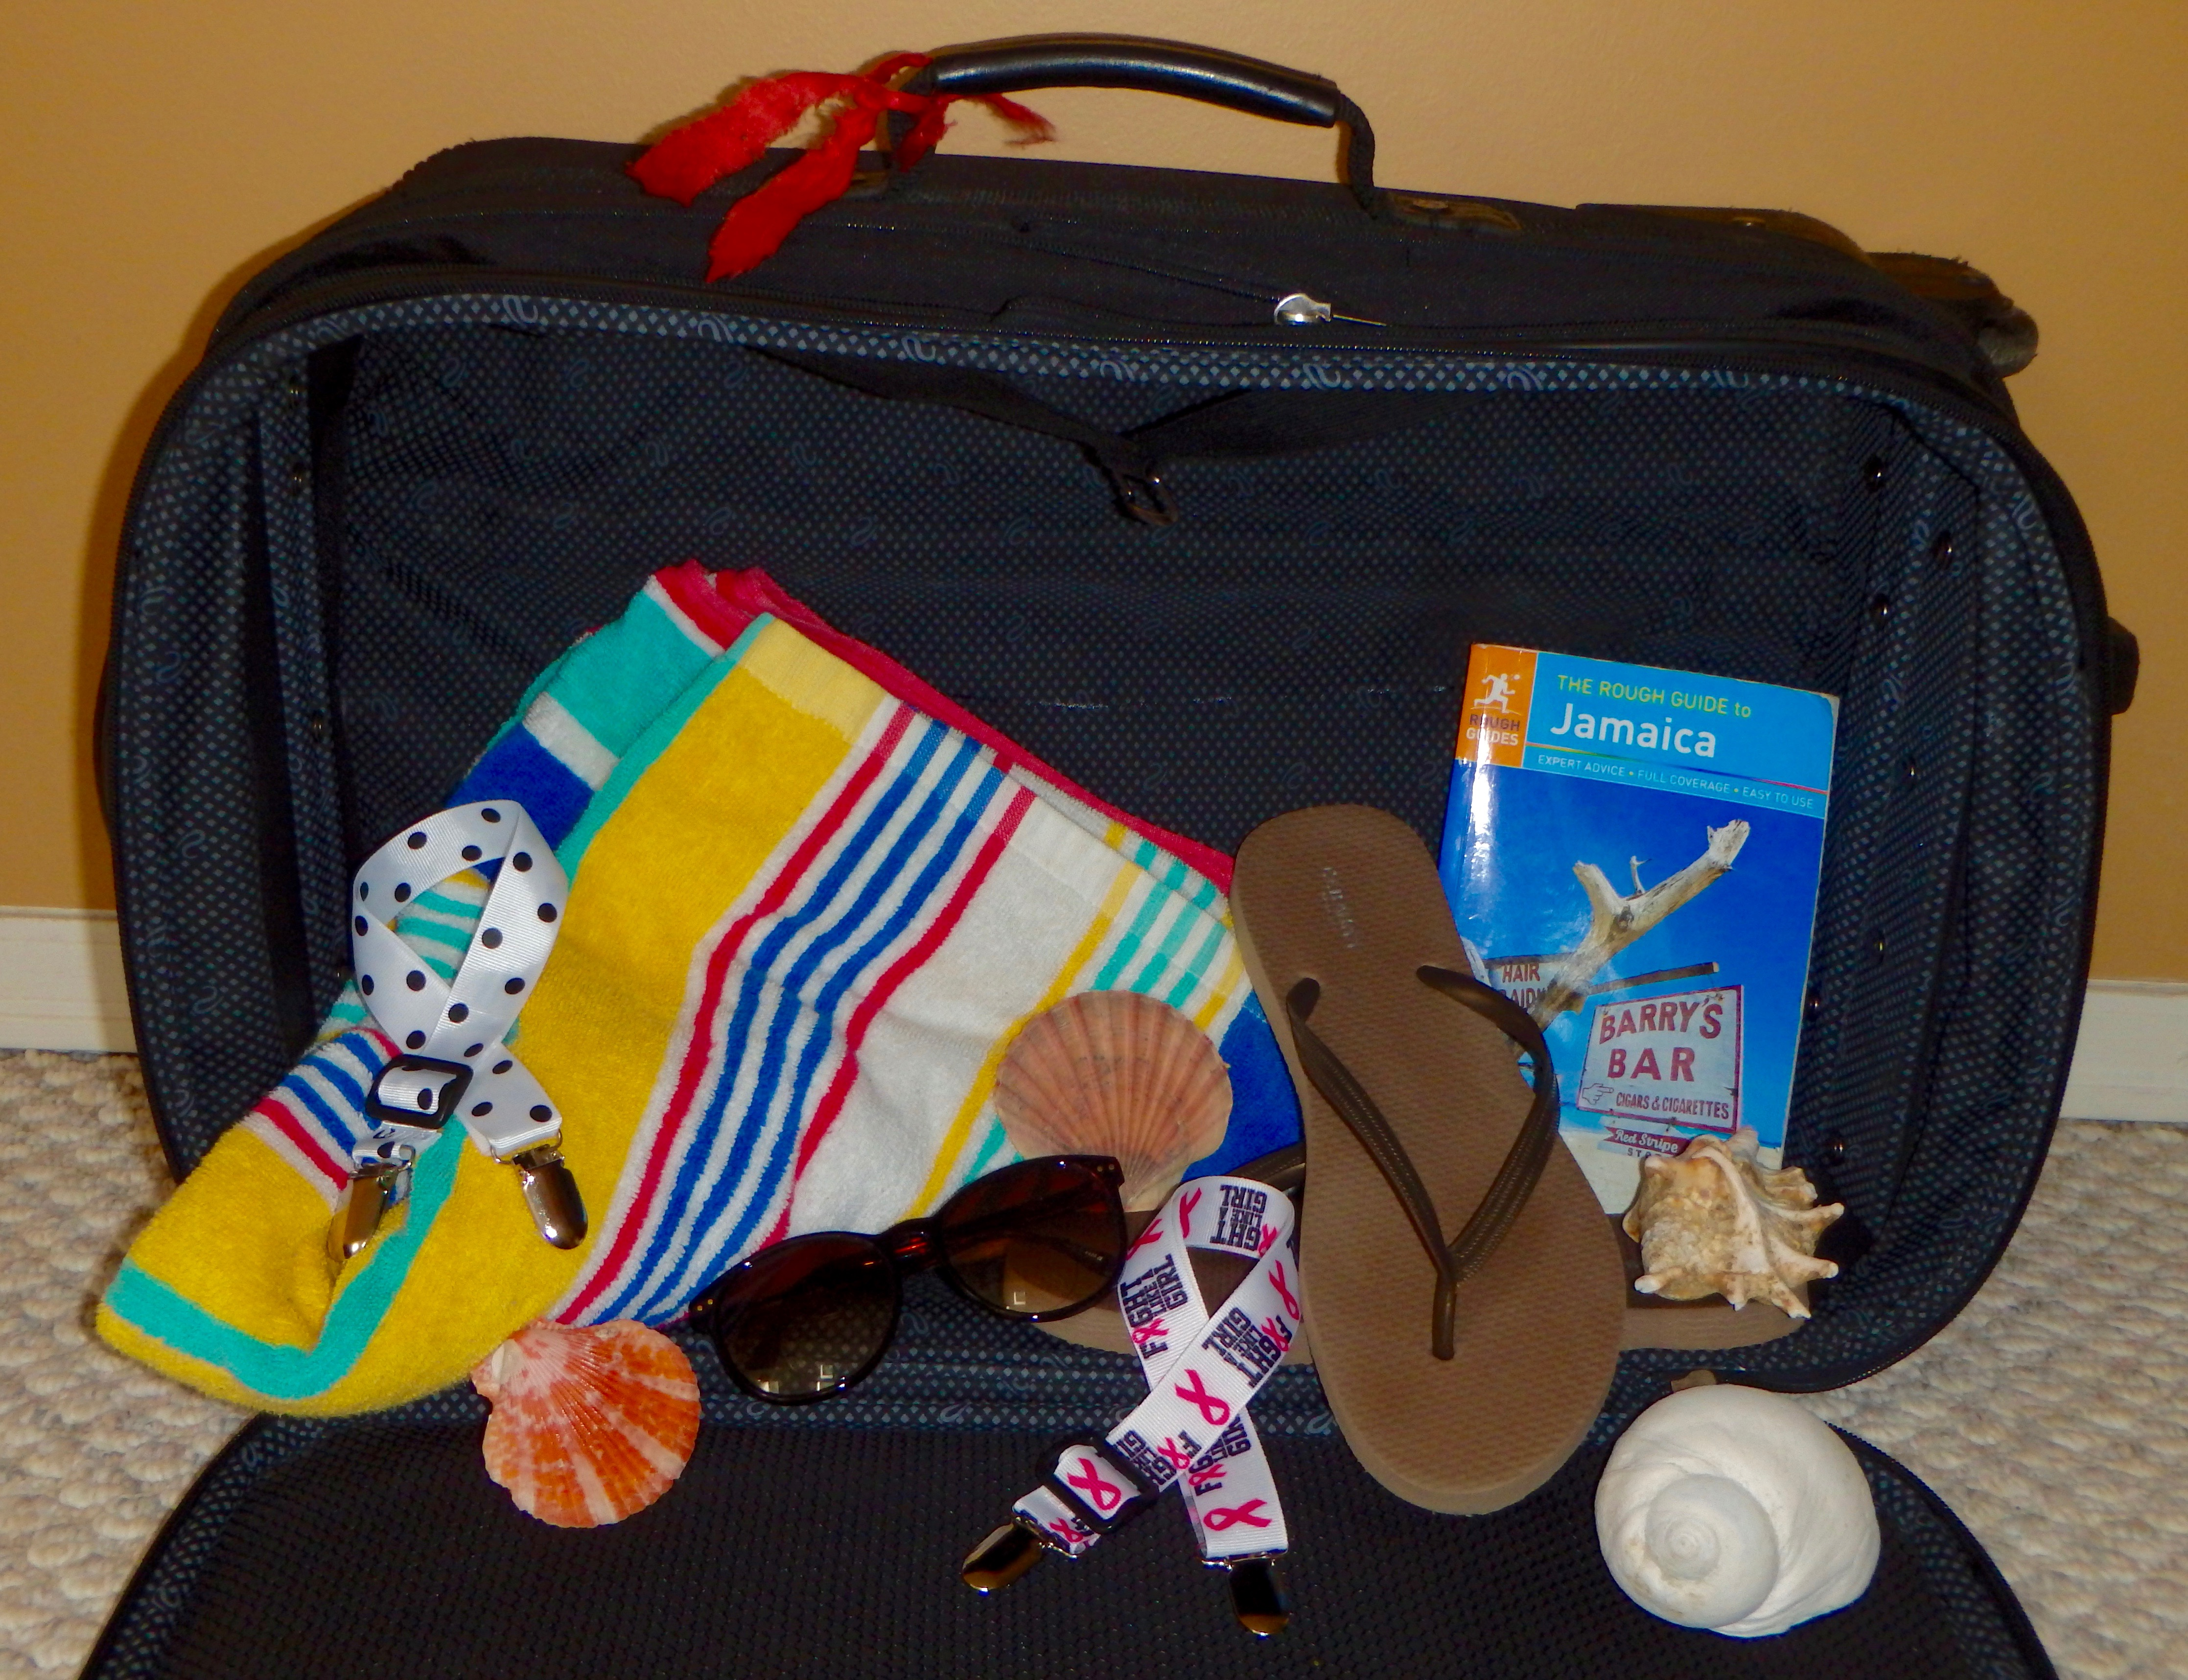 Beach packing list 8 must have items for jamaica beach holiday